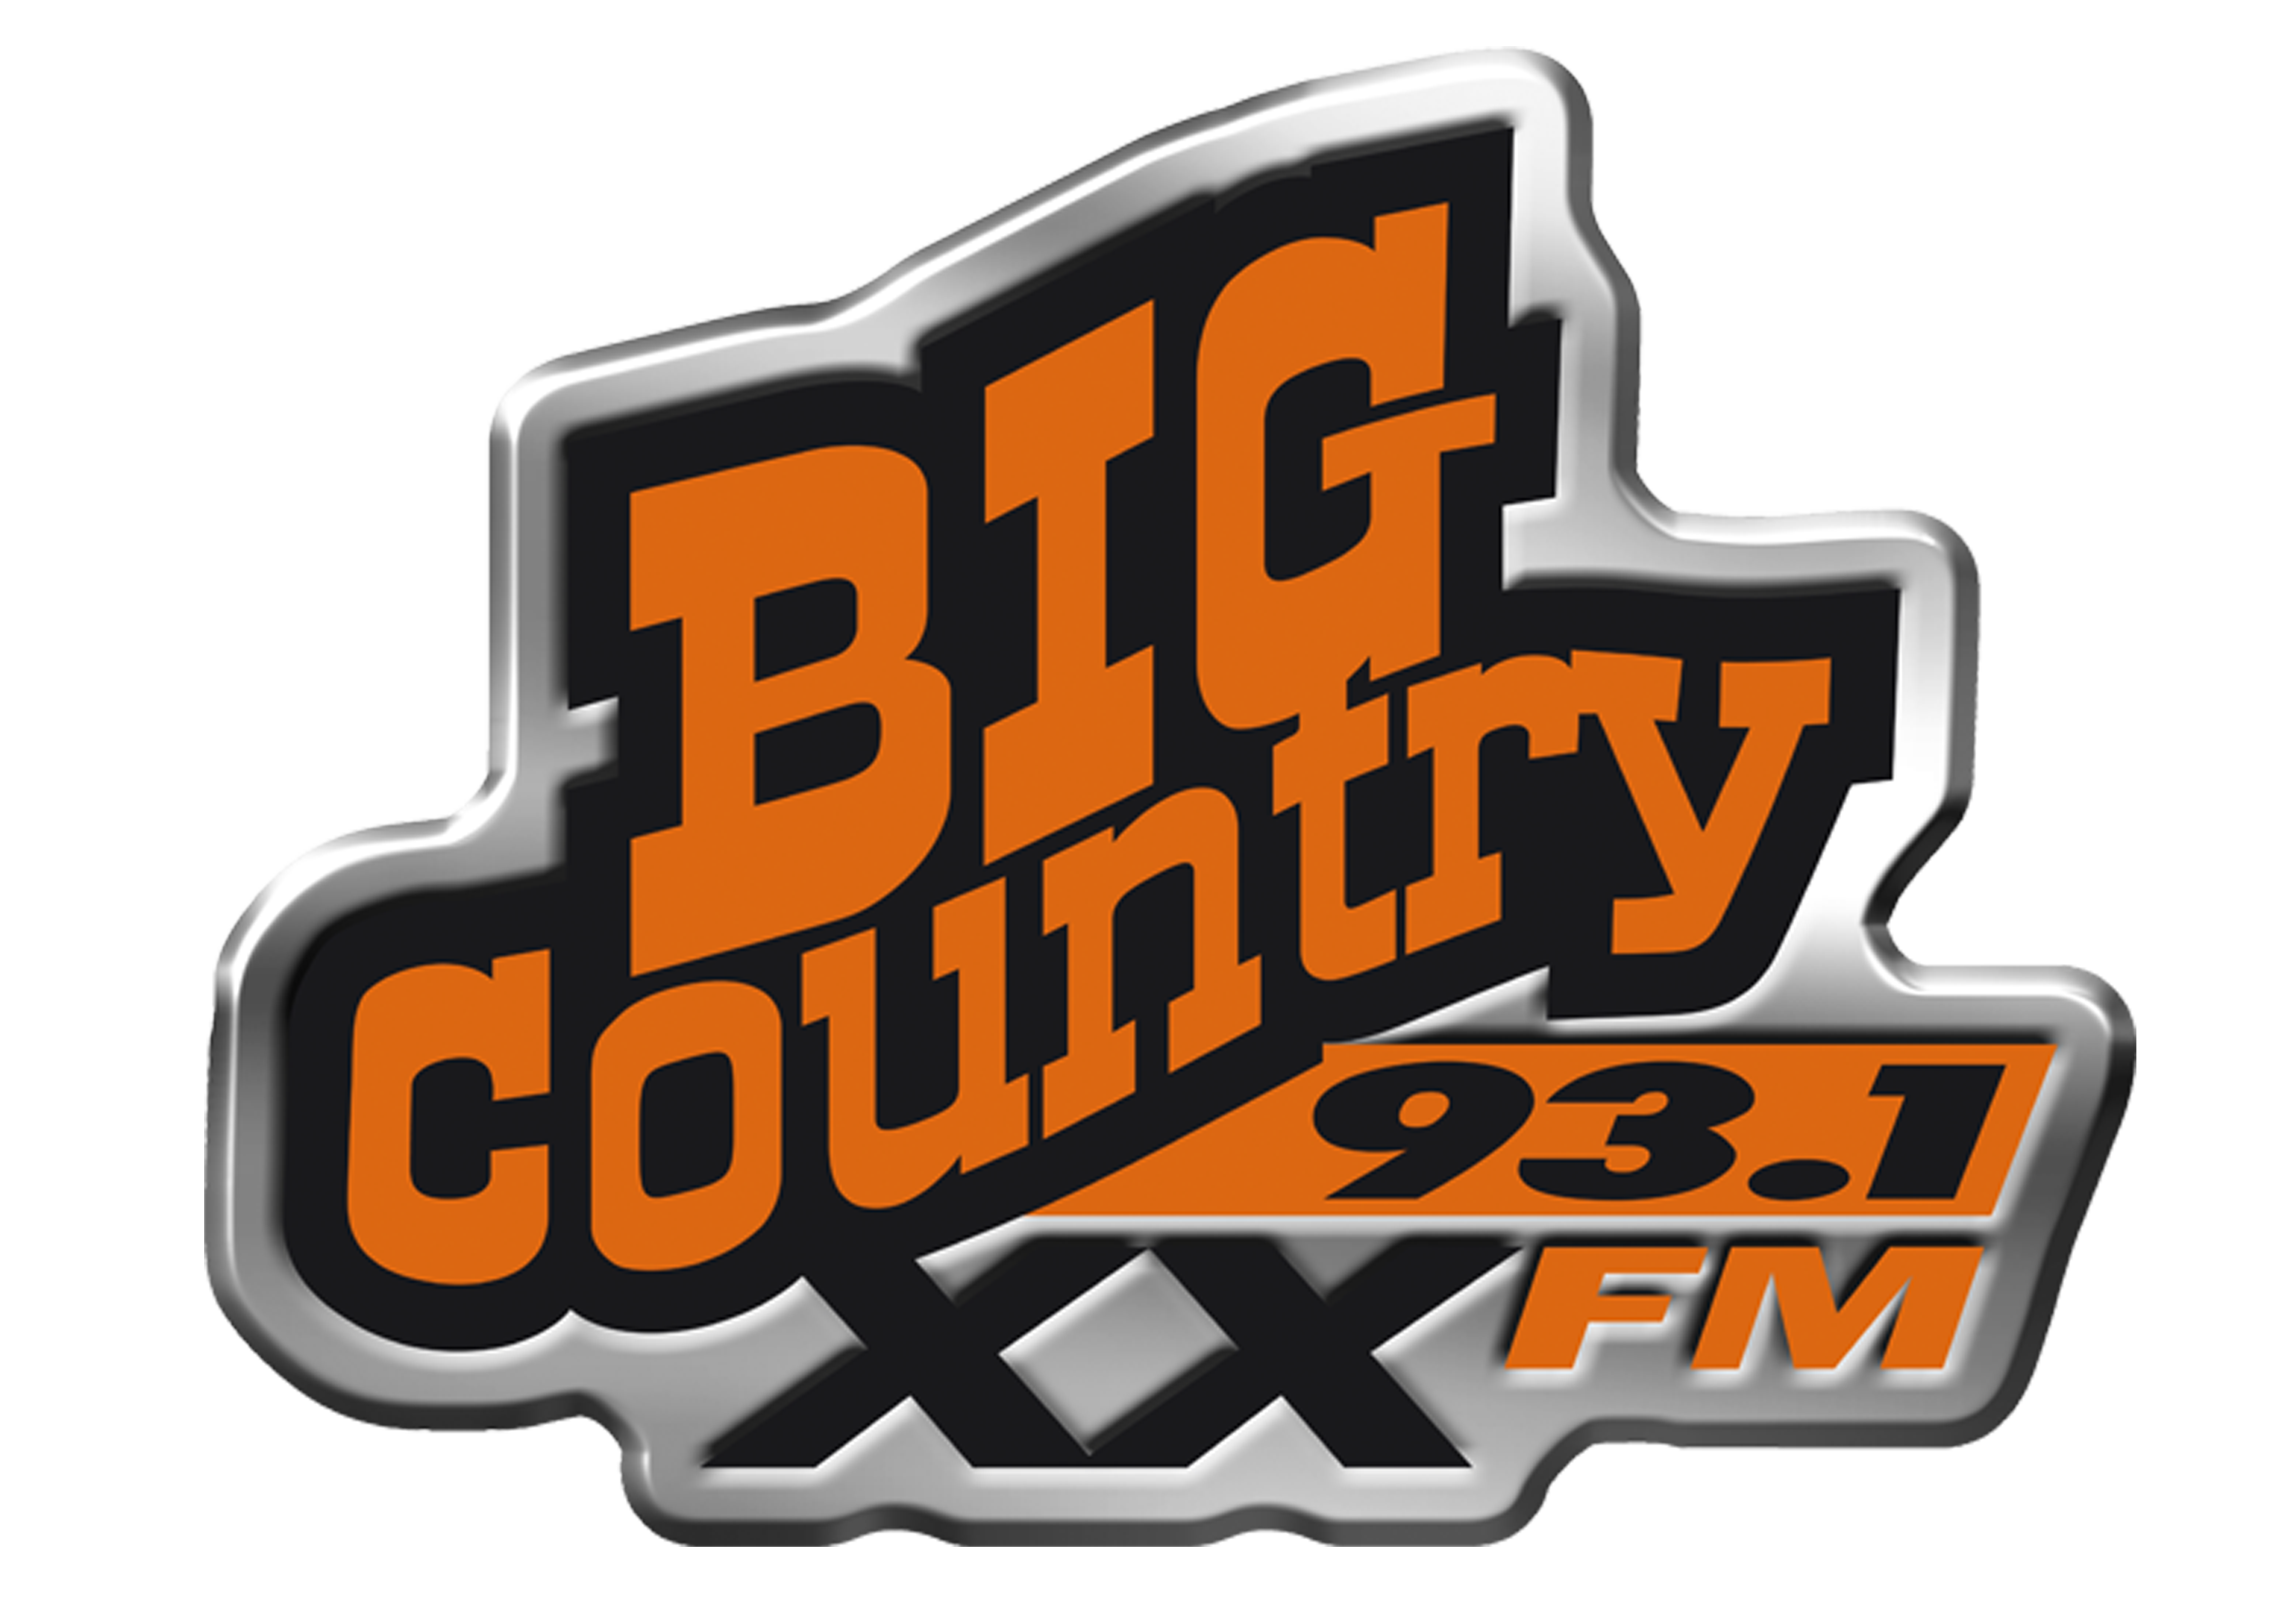 003 Big Country